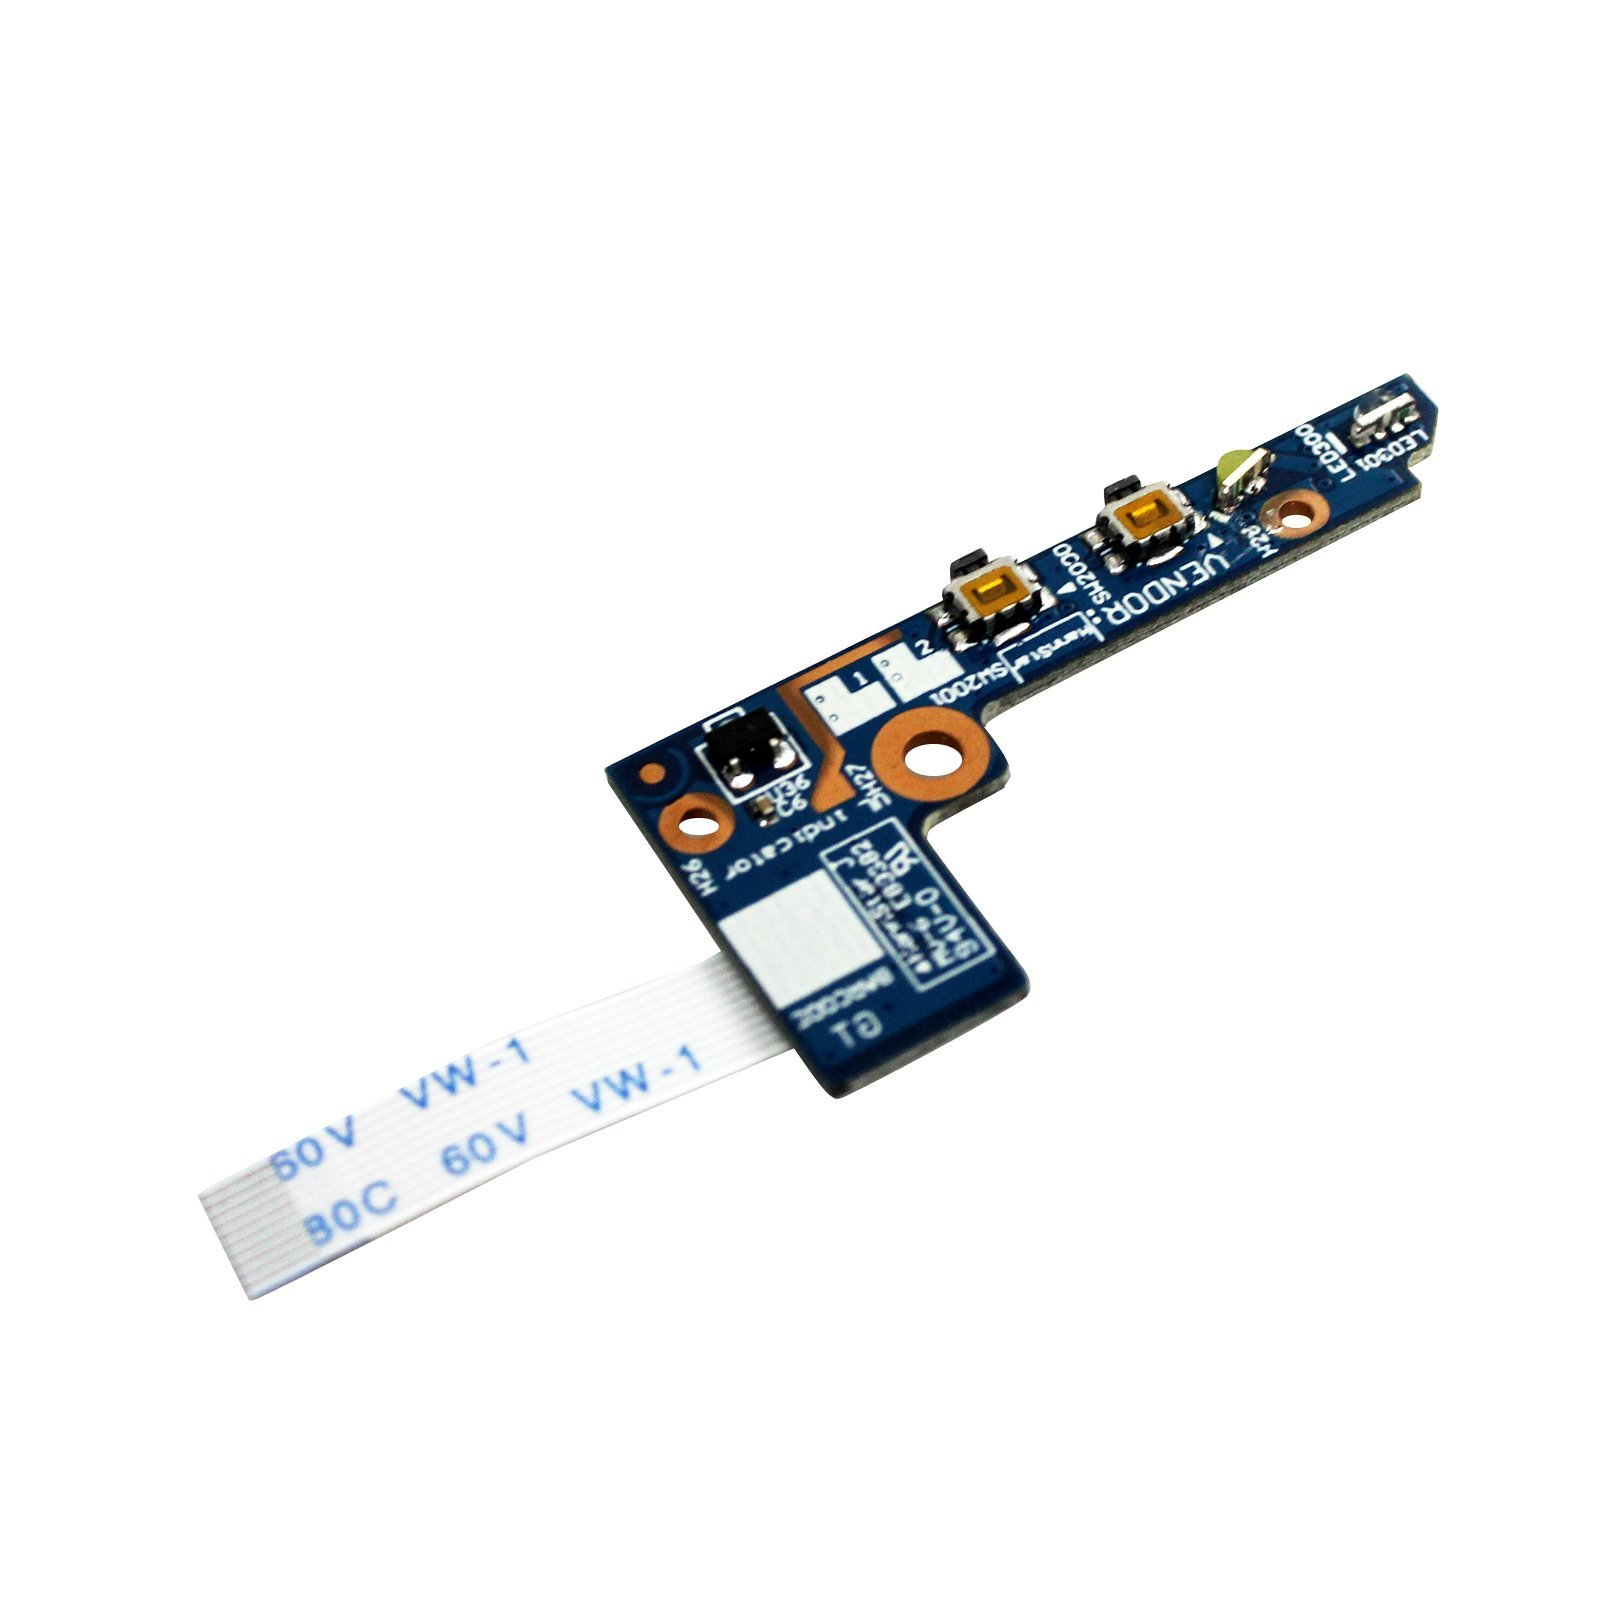 GinTai Power Button Board Cable NS-A201 Replacement for Lenovo Yoga 2 11 20332 20428 59417911 43508112001 90005666 by GinTai (Image #3)